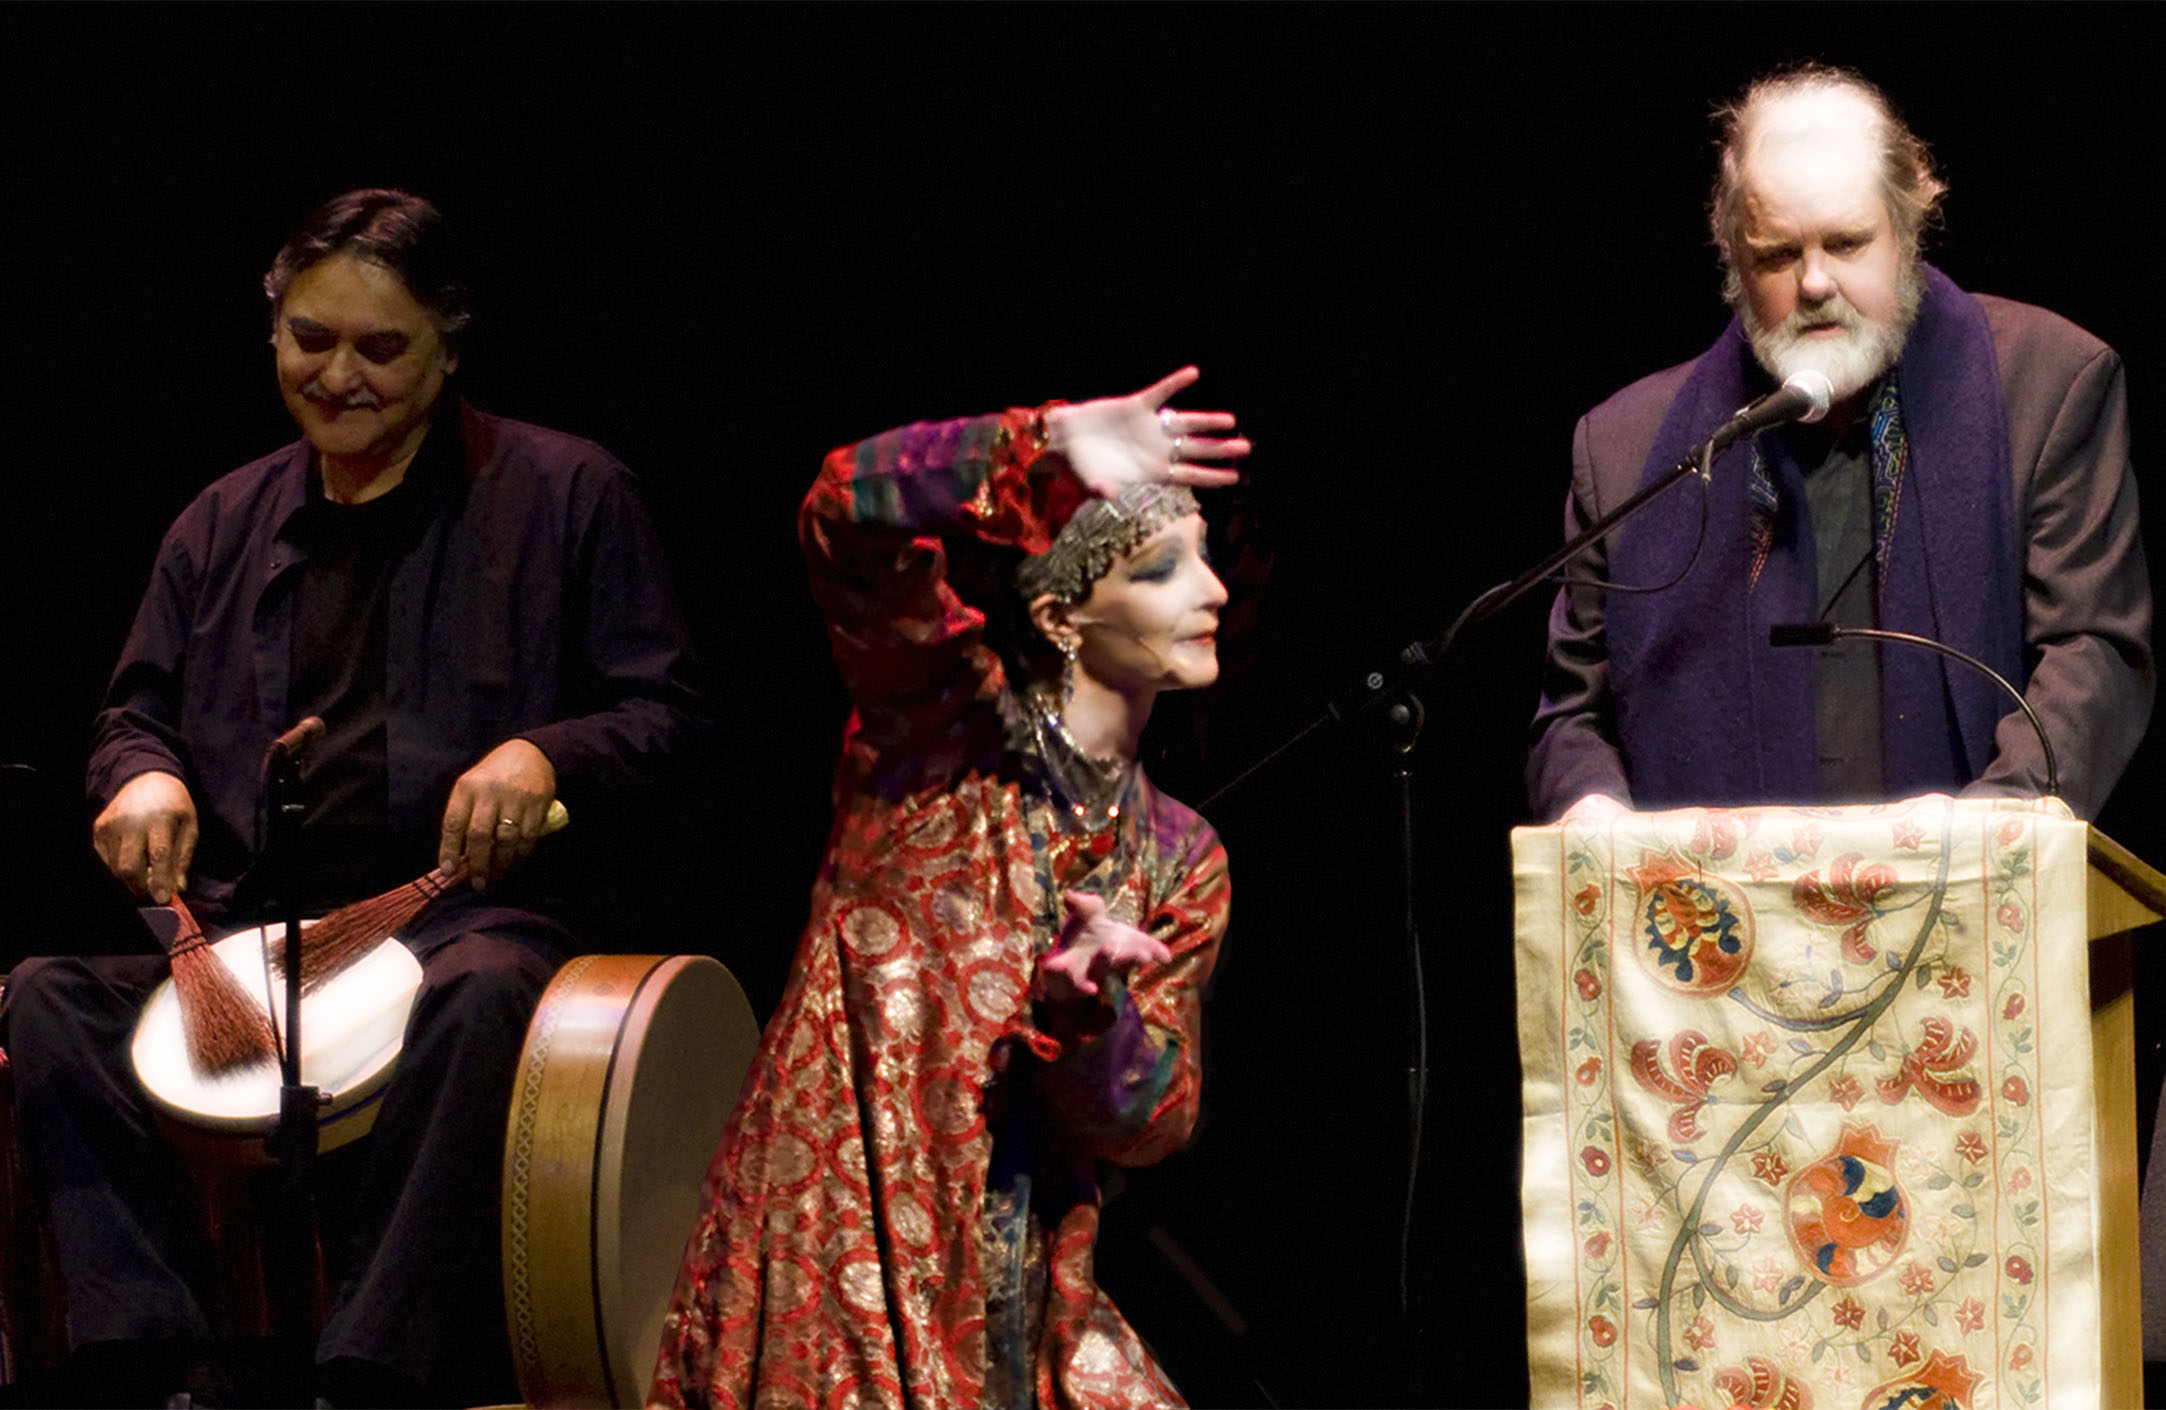 Rumi Concert with Coleman Barks, Zuleikha and Glen Velez